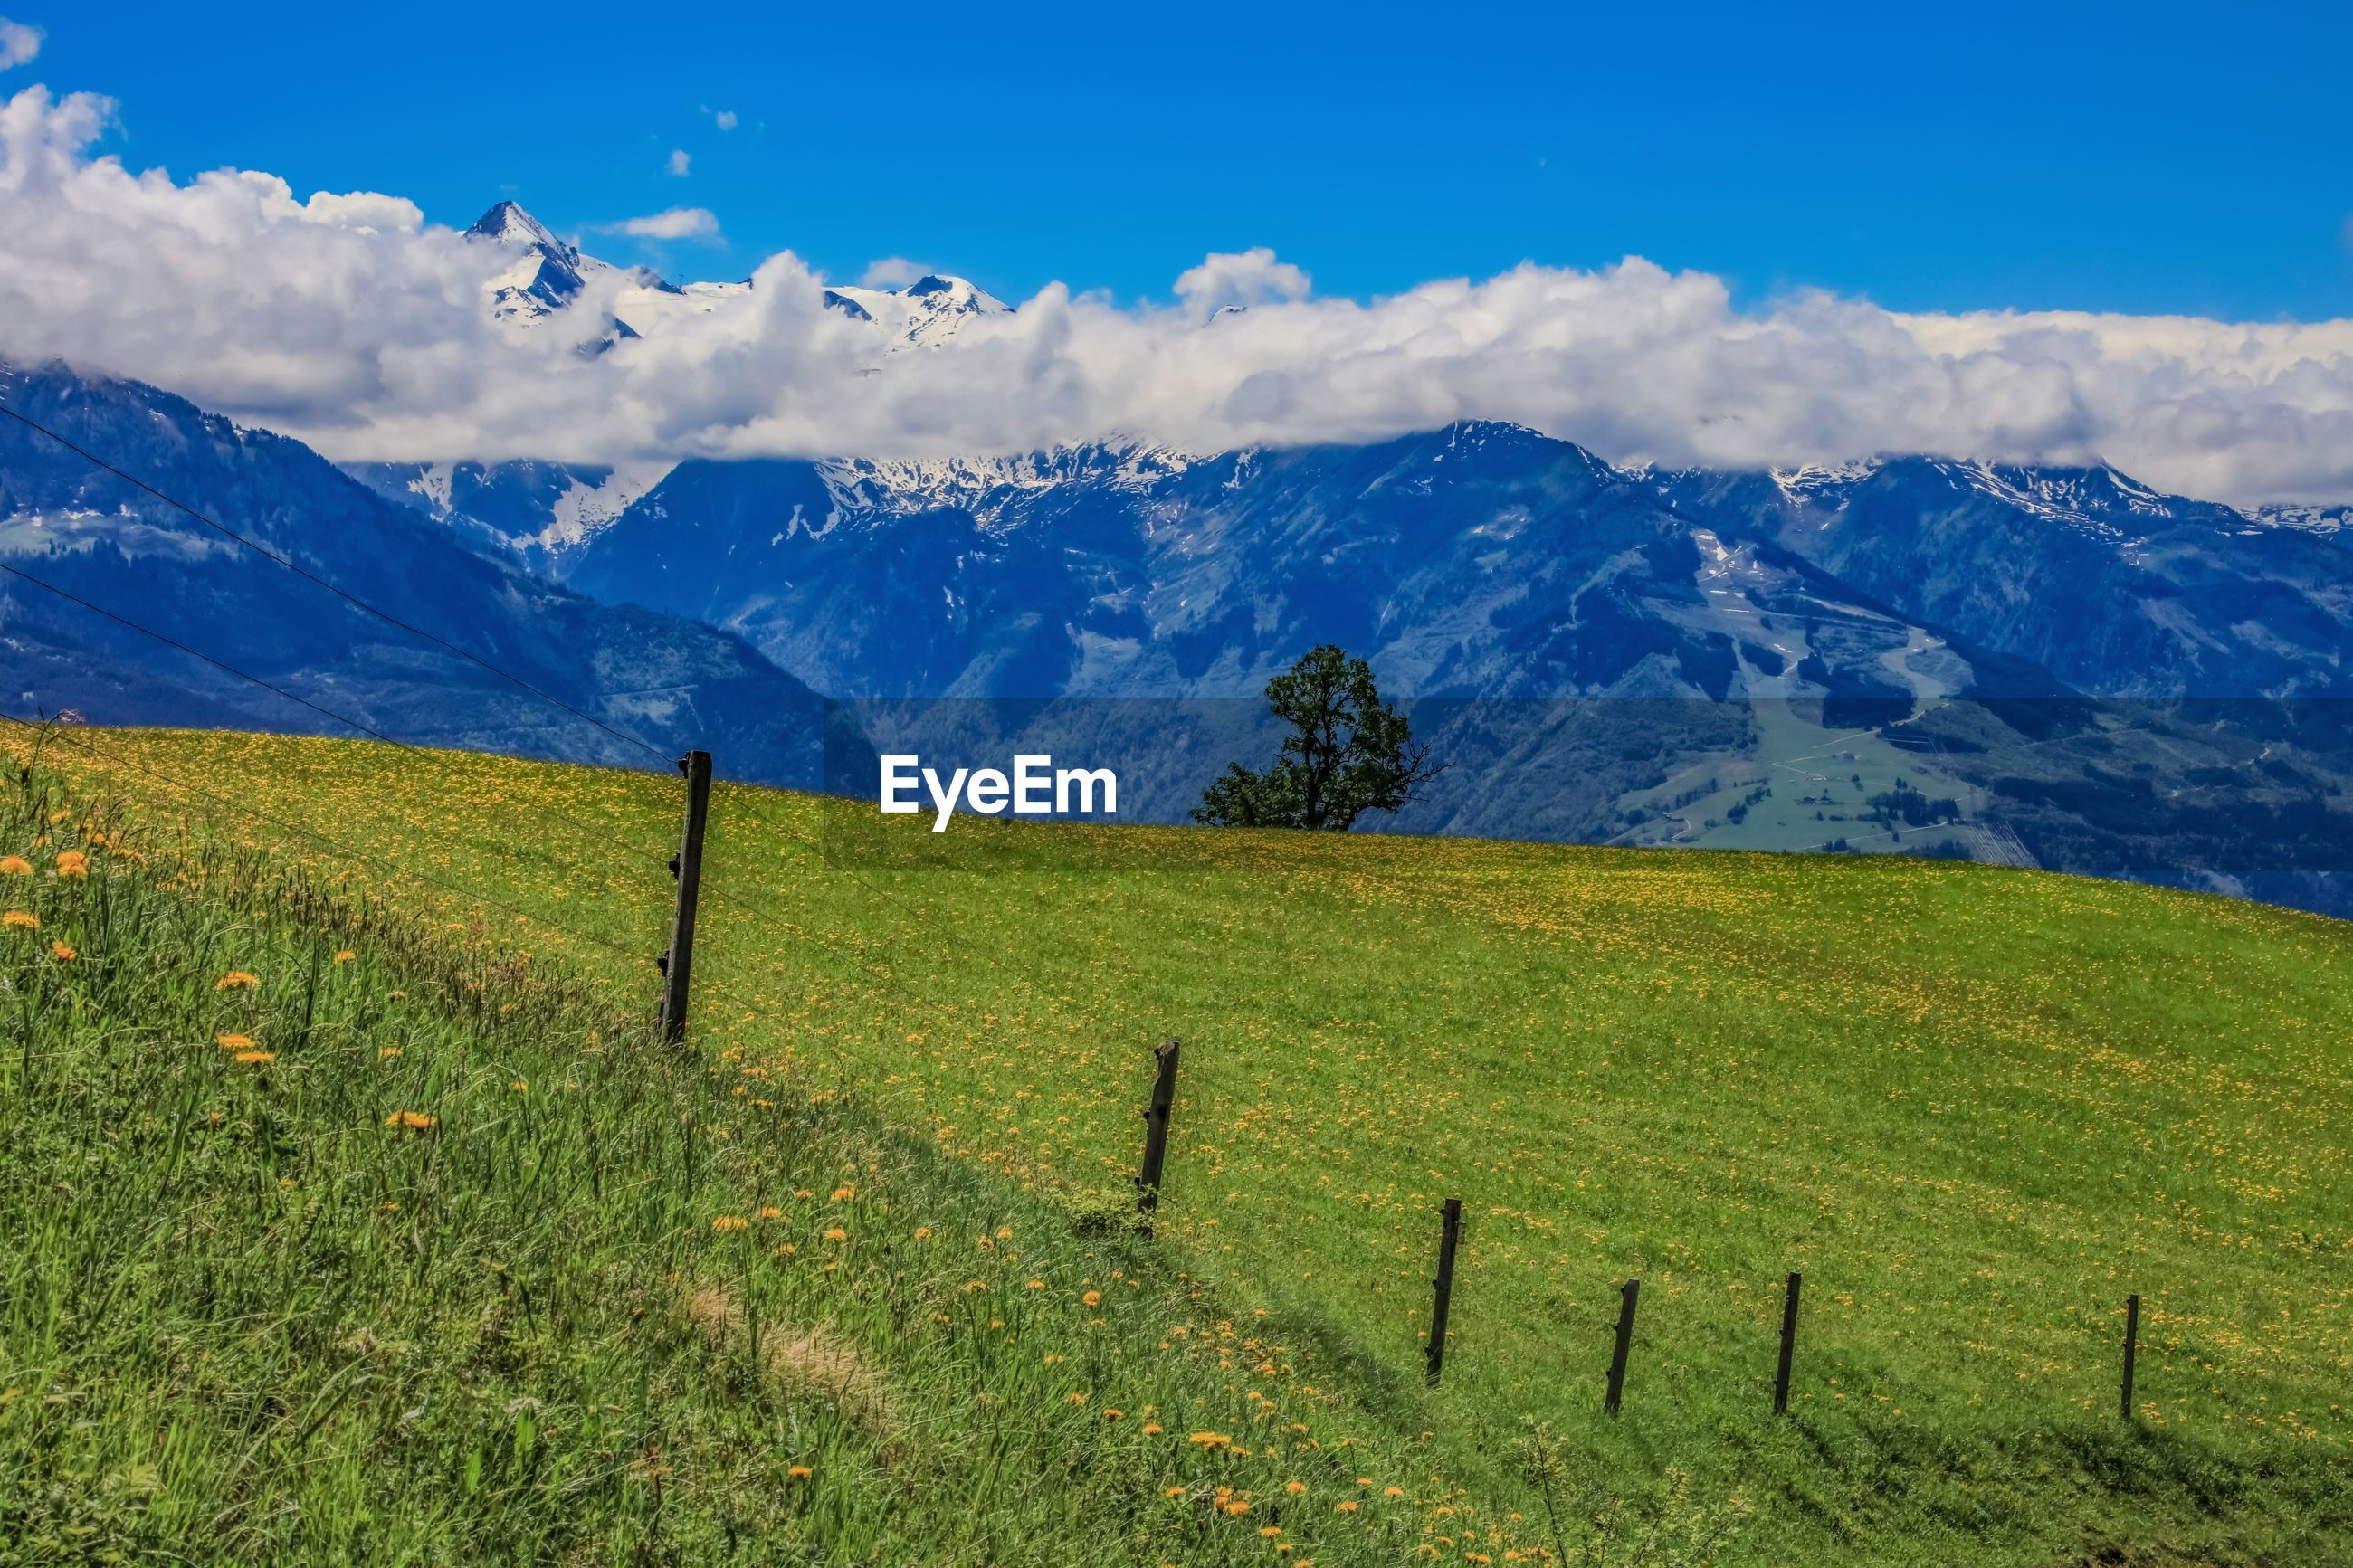 SCENIC VIEW OF FIELD SEEN THROUGH MOUNTAINS